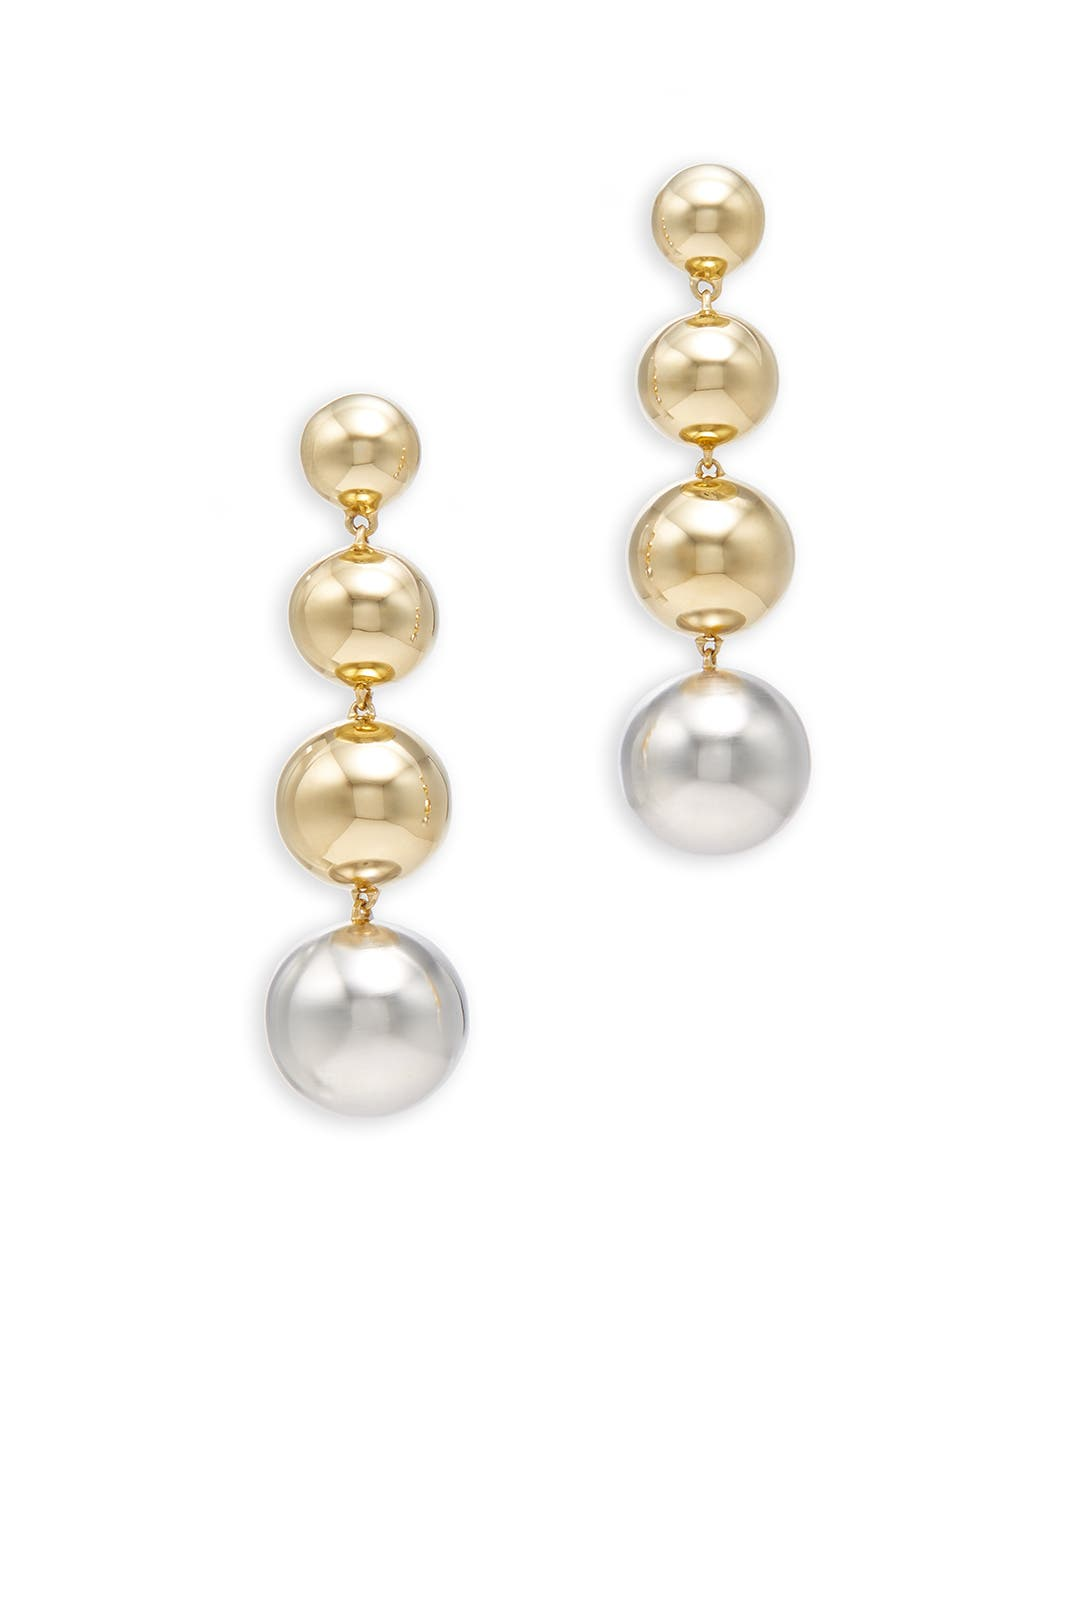 Vivi Earrings By Elizabeth And James Accessories For $30  Rent The Runway